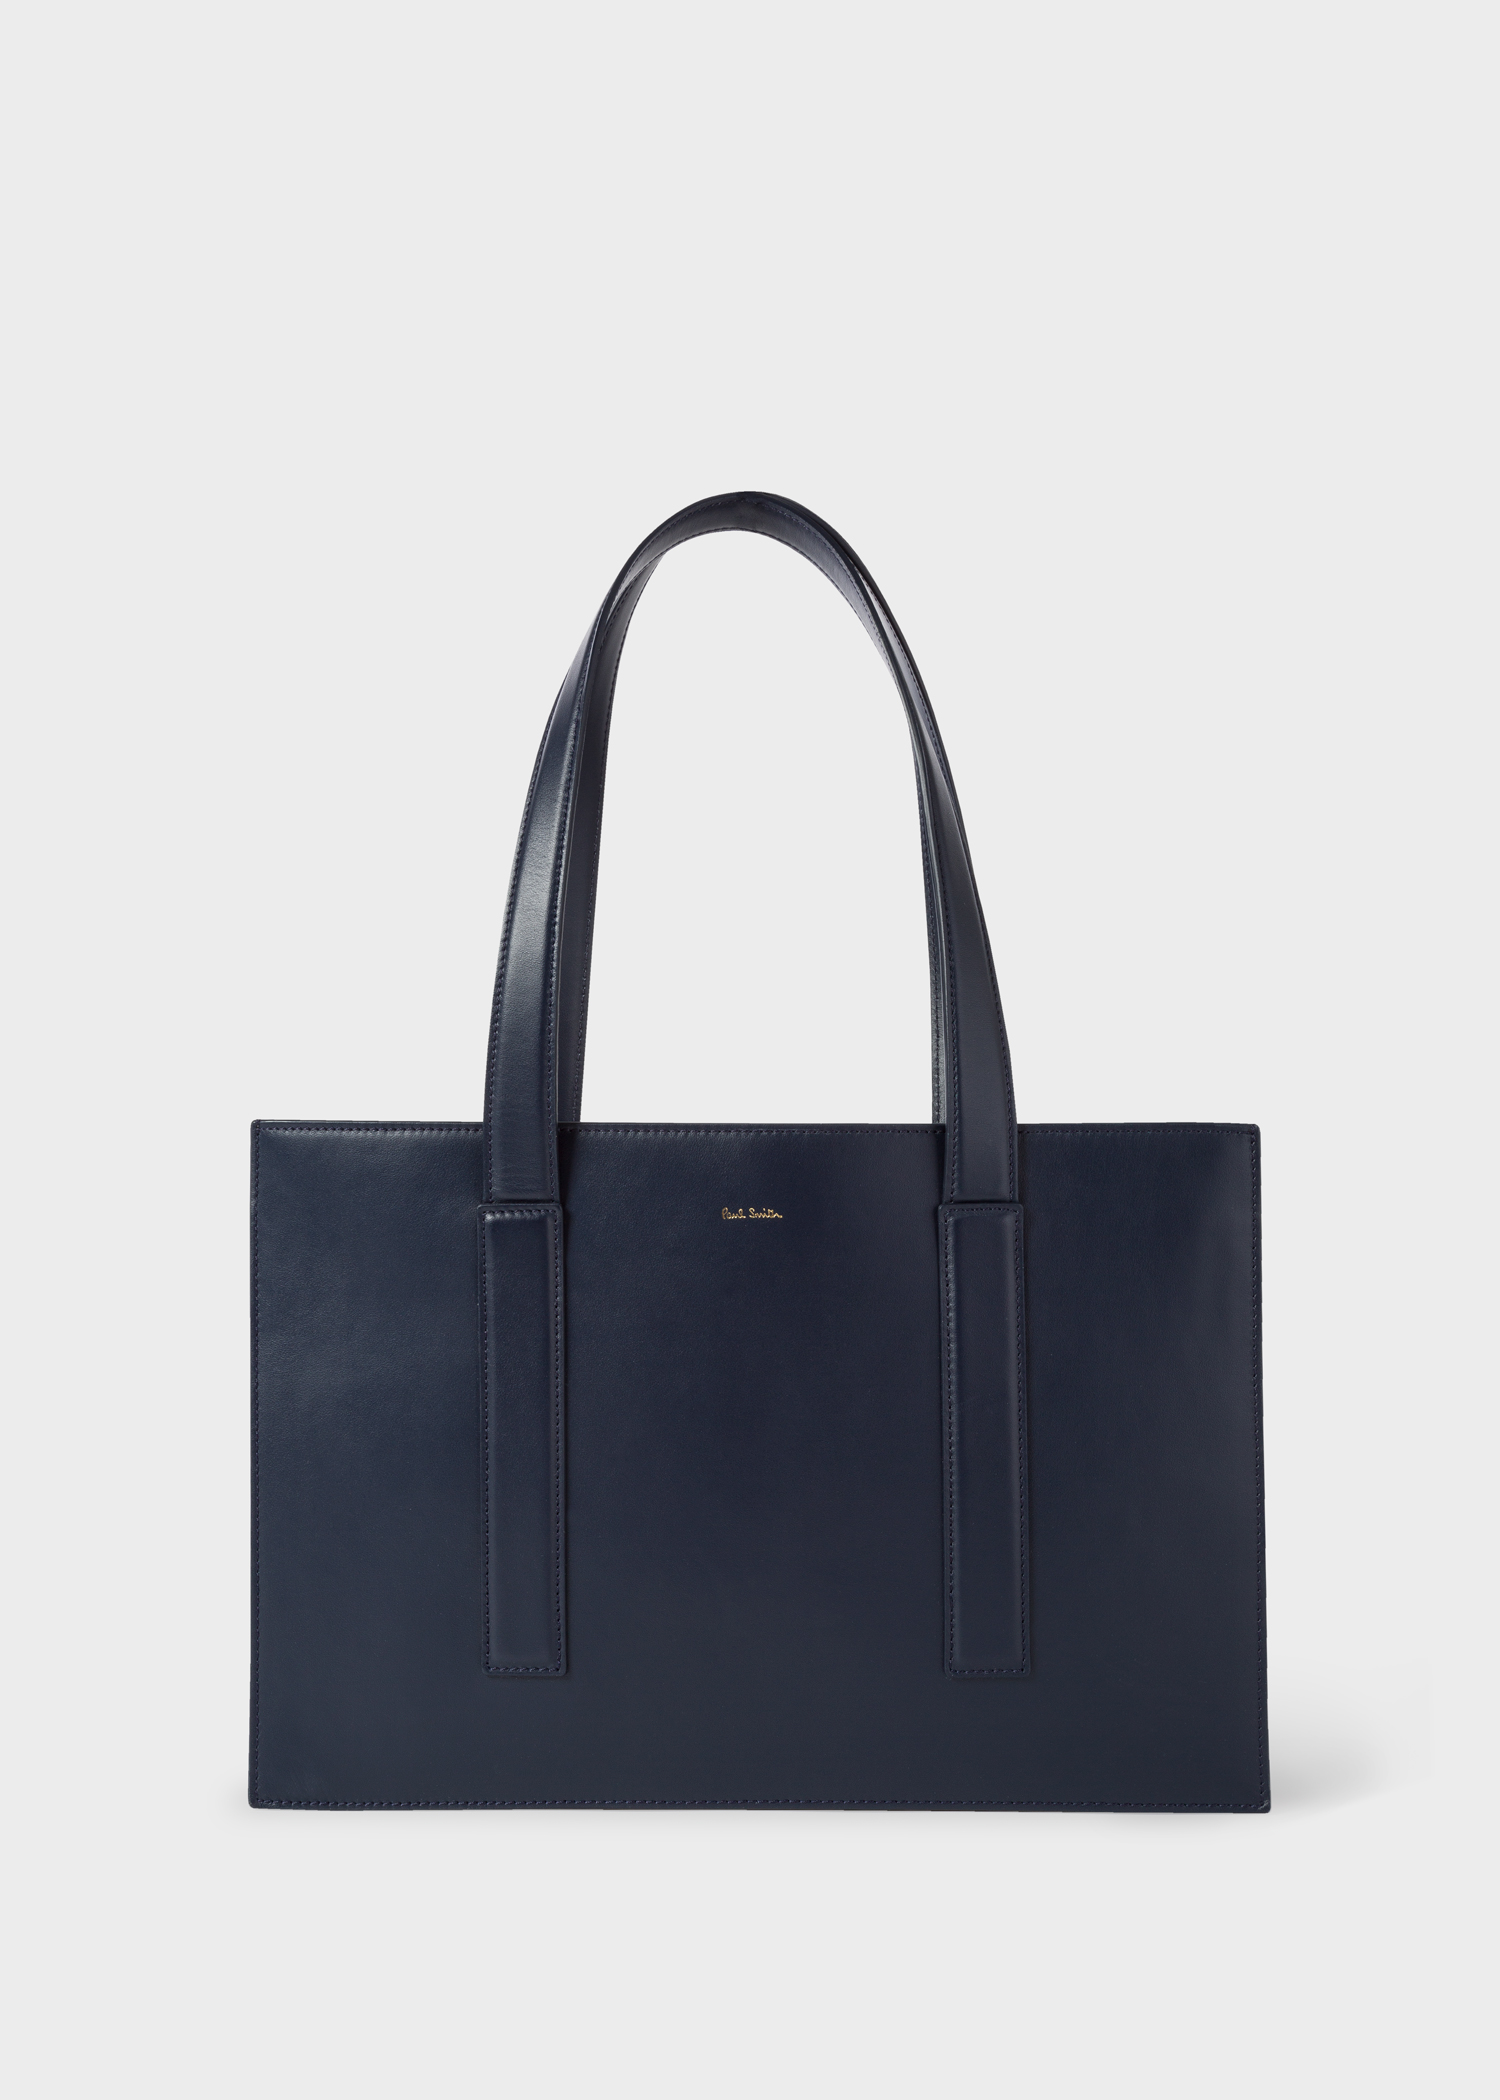 830c4731a0 Women s Navy  Concertina Swirl  Small Leather Tote Bag - Paul Smith Asia